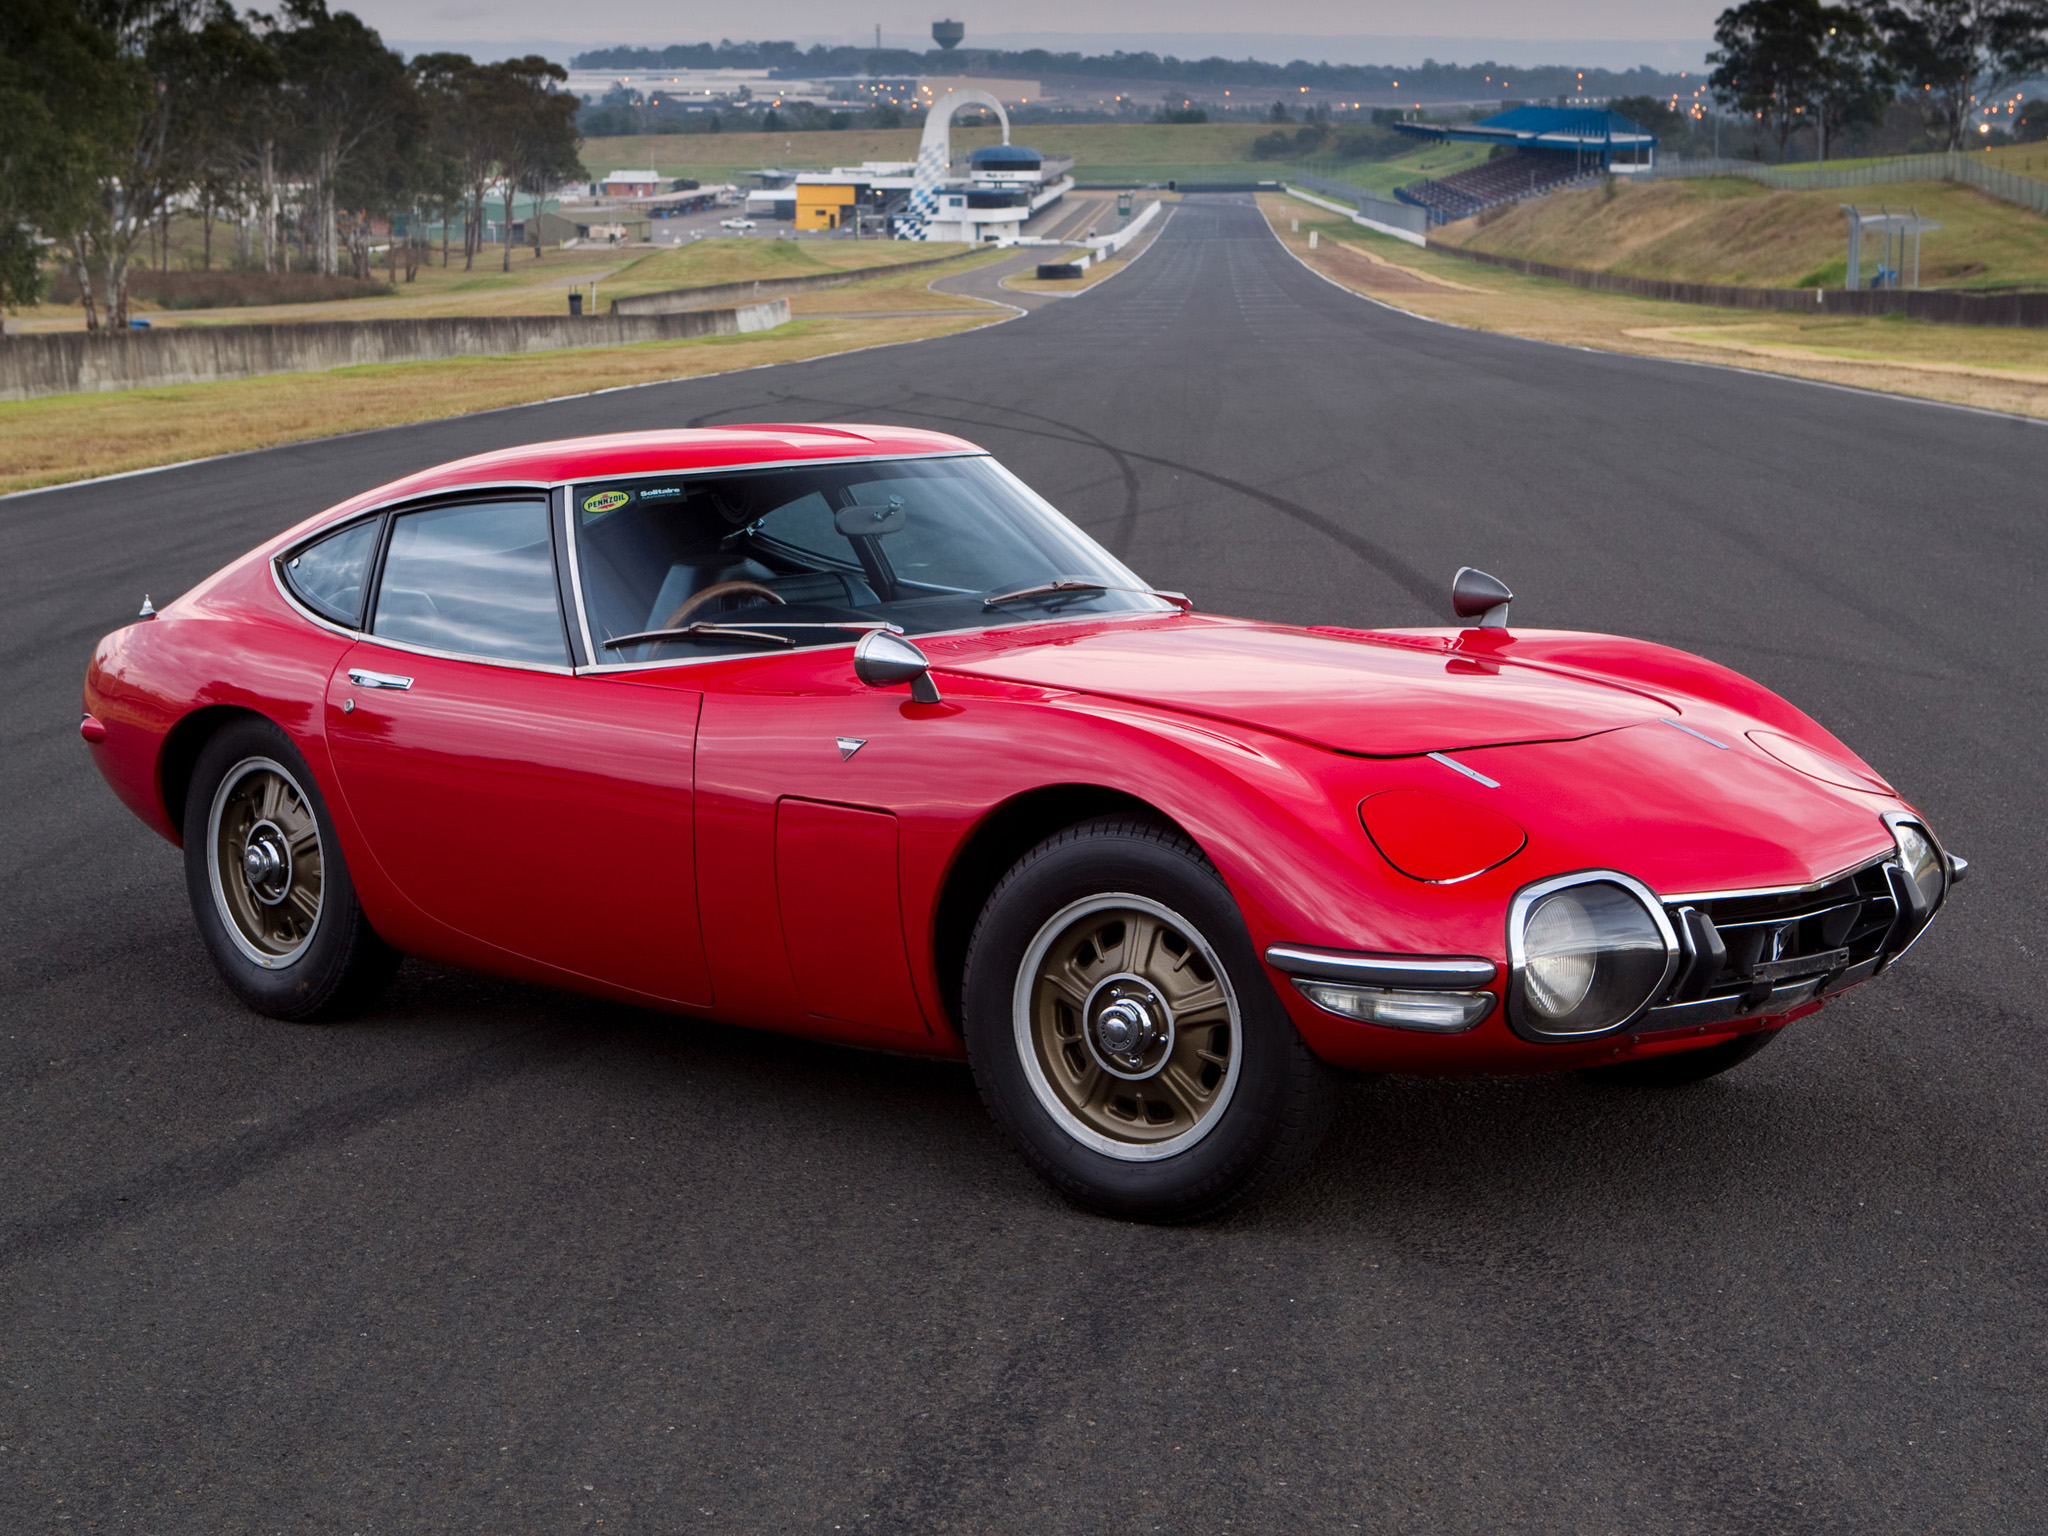 Toyota 2000gt photo - 1